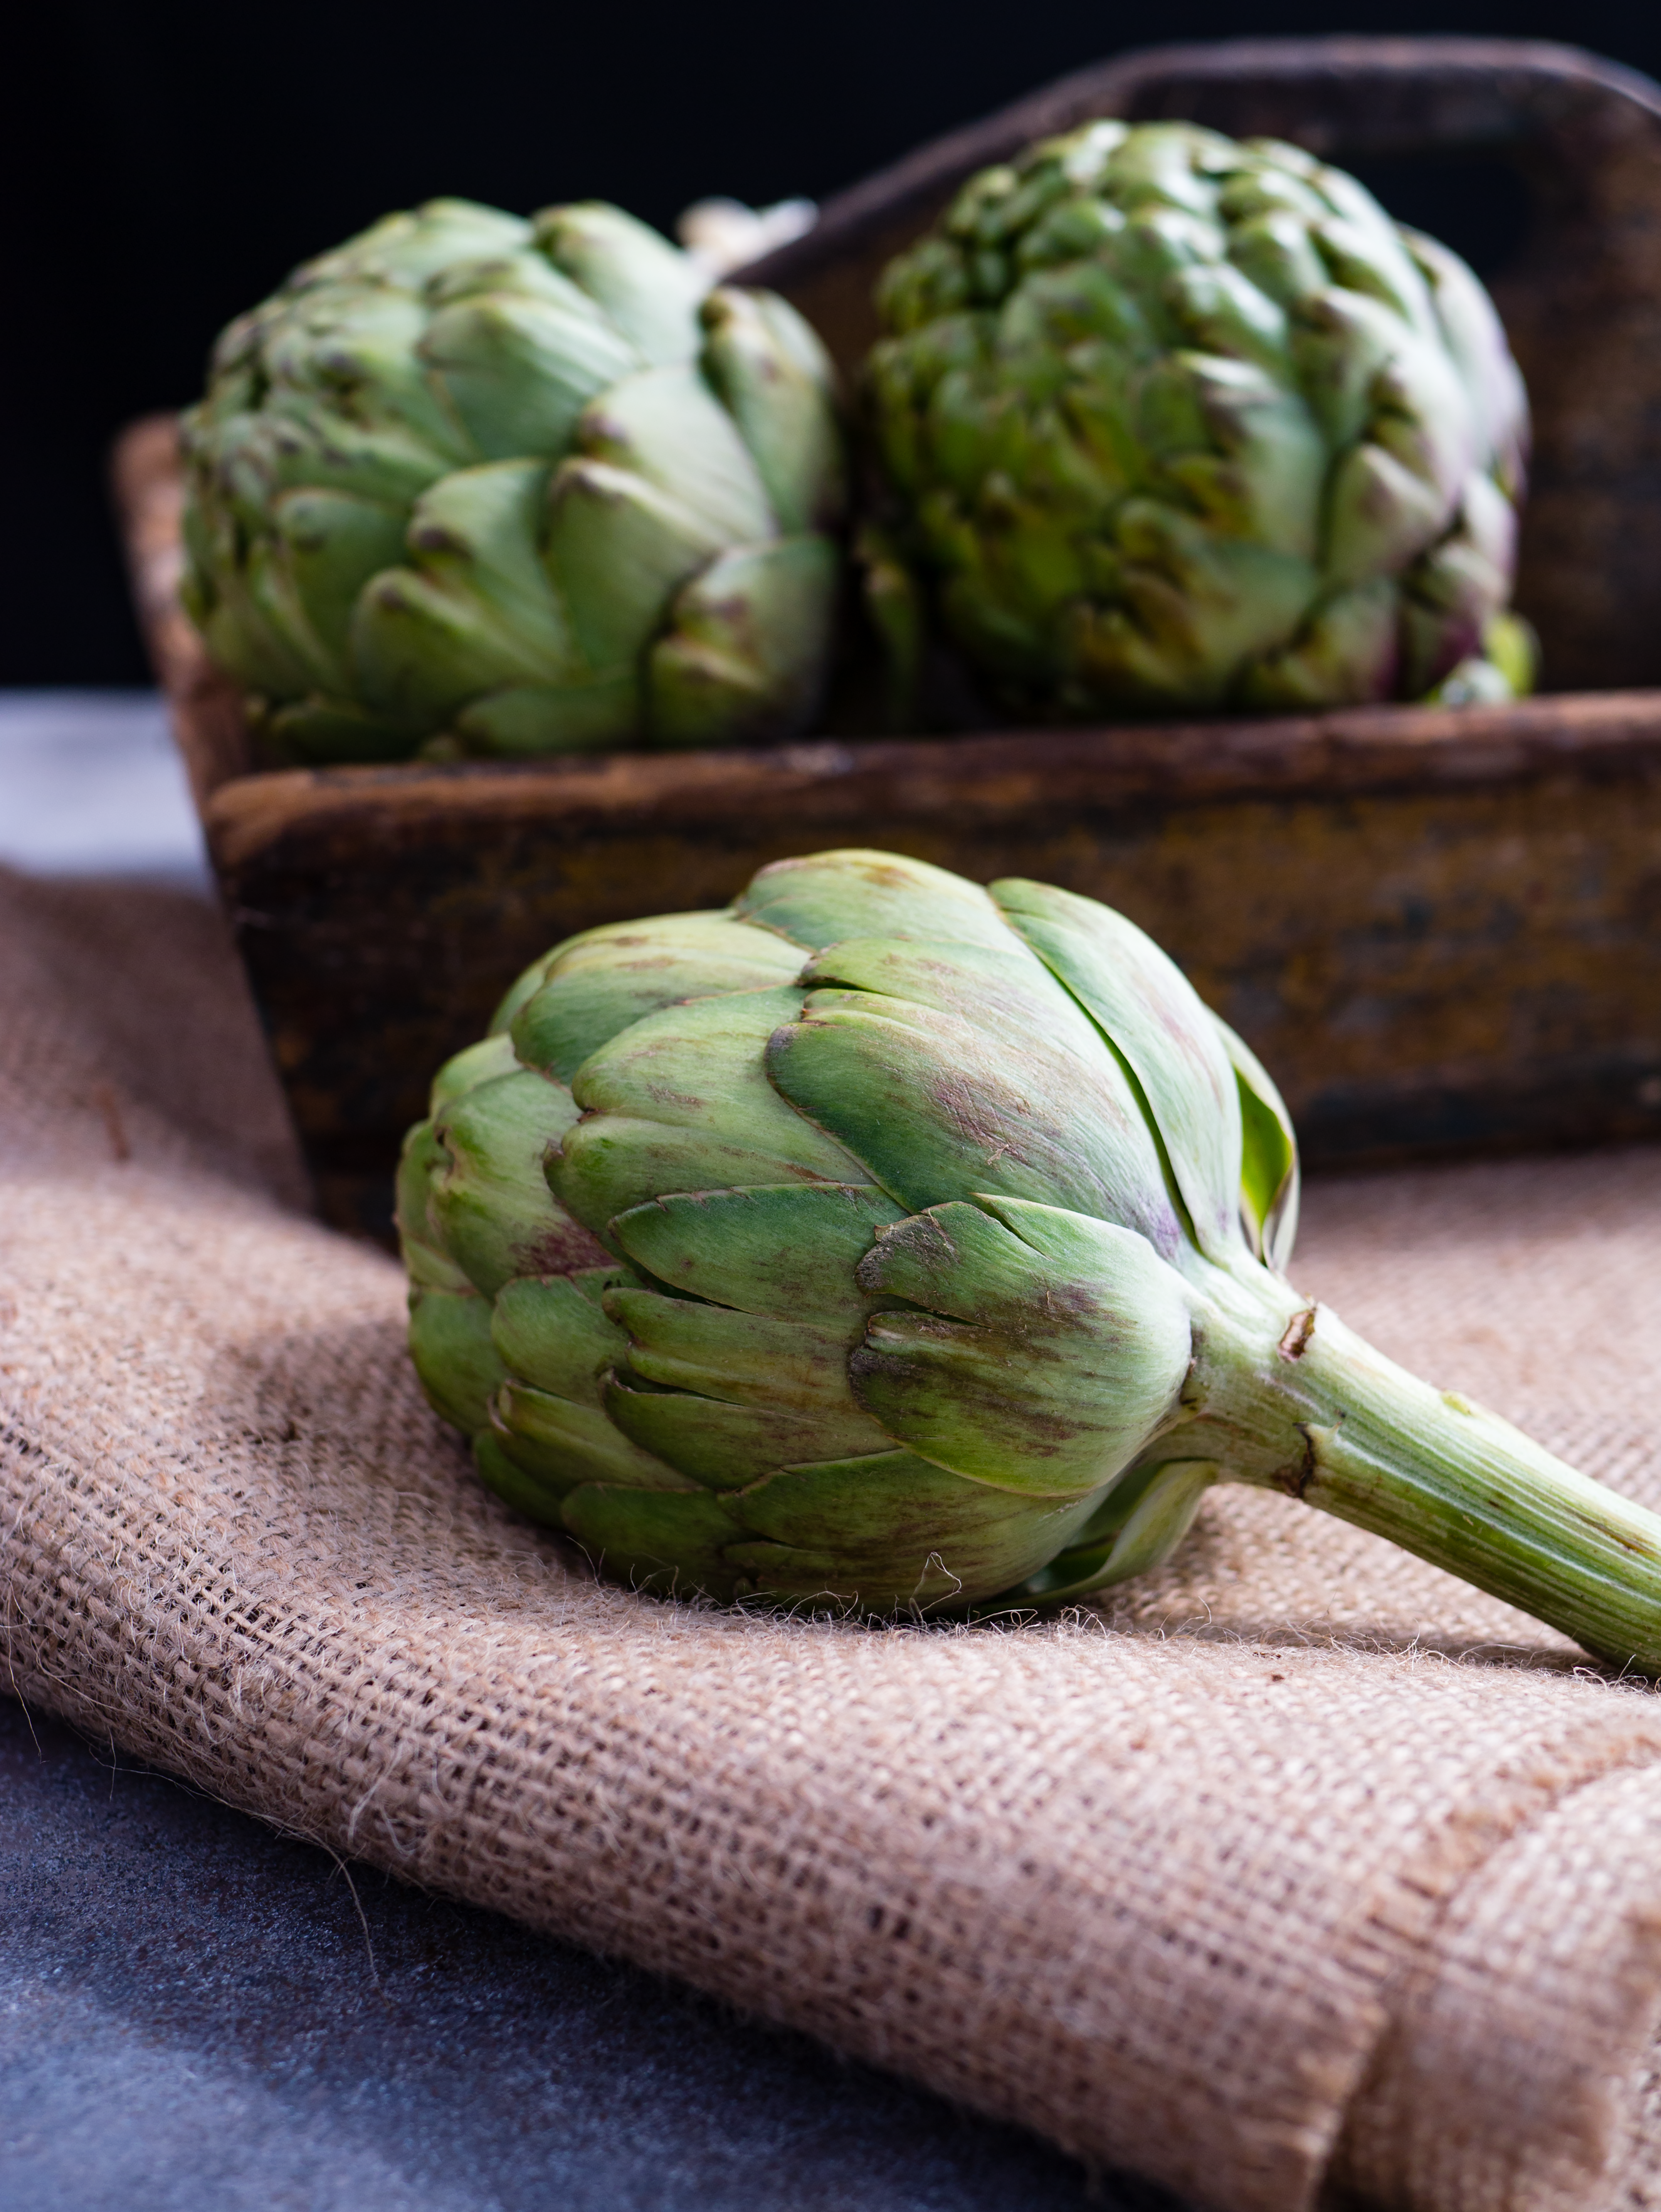 Fresh artichokes on a burlap cloth